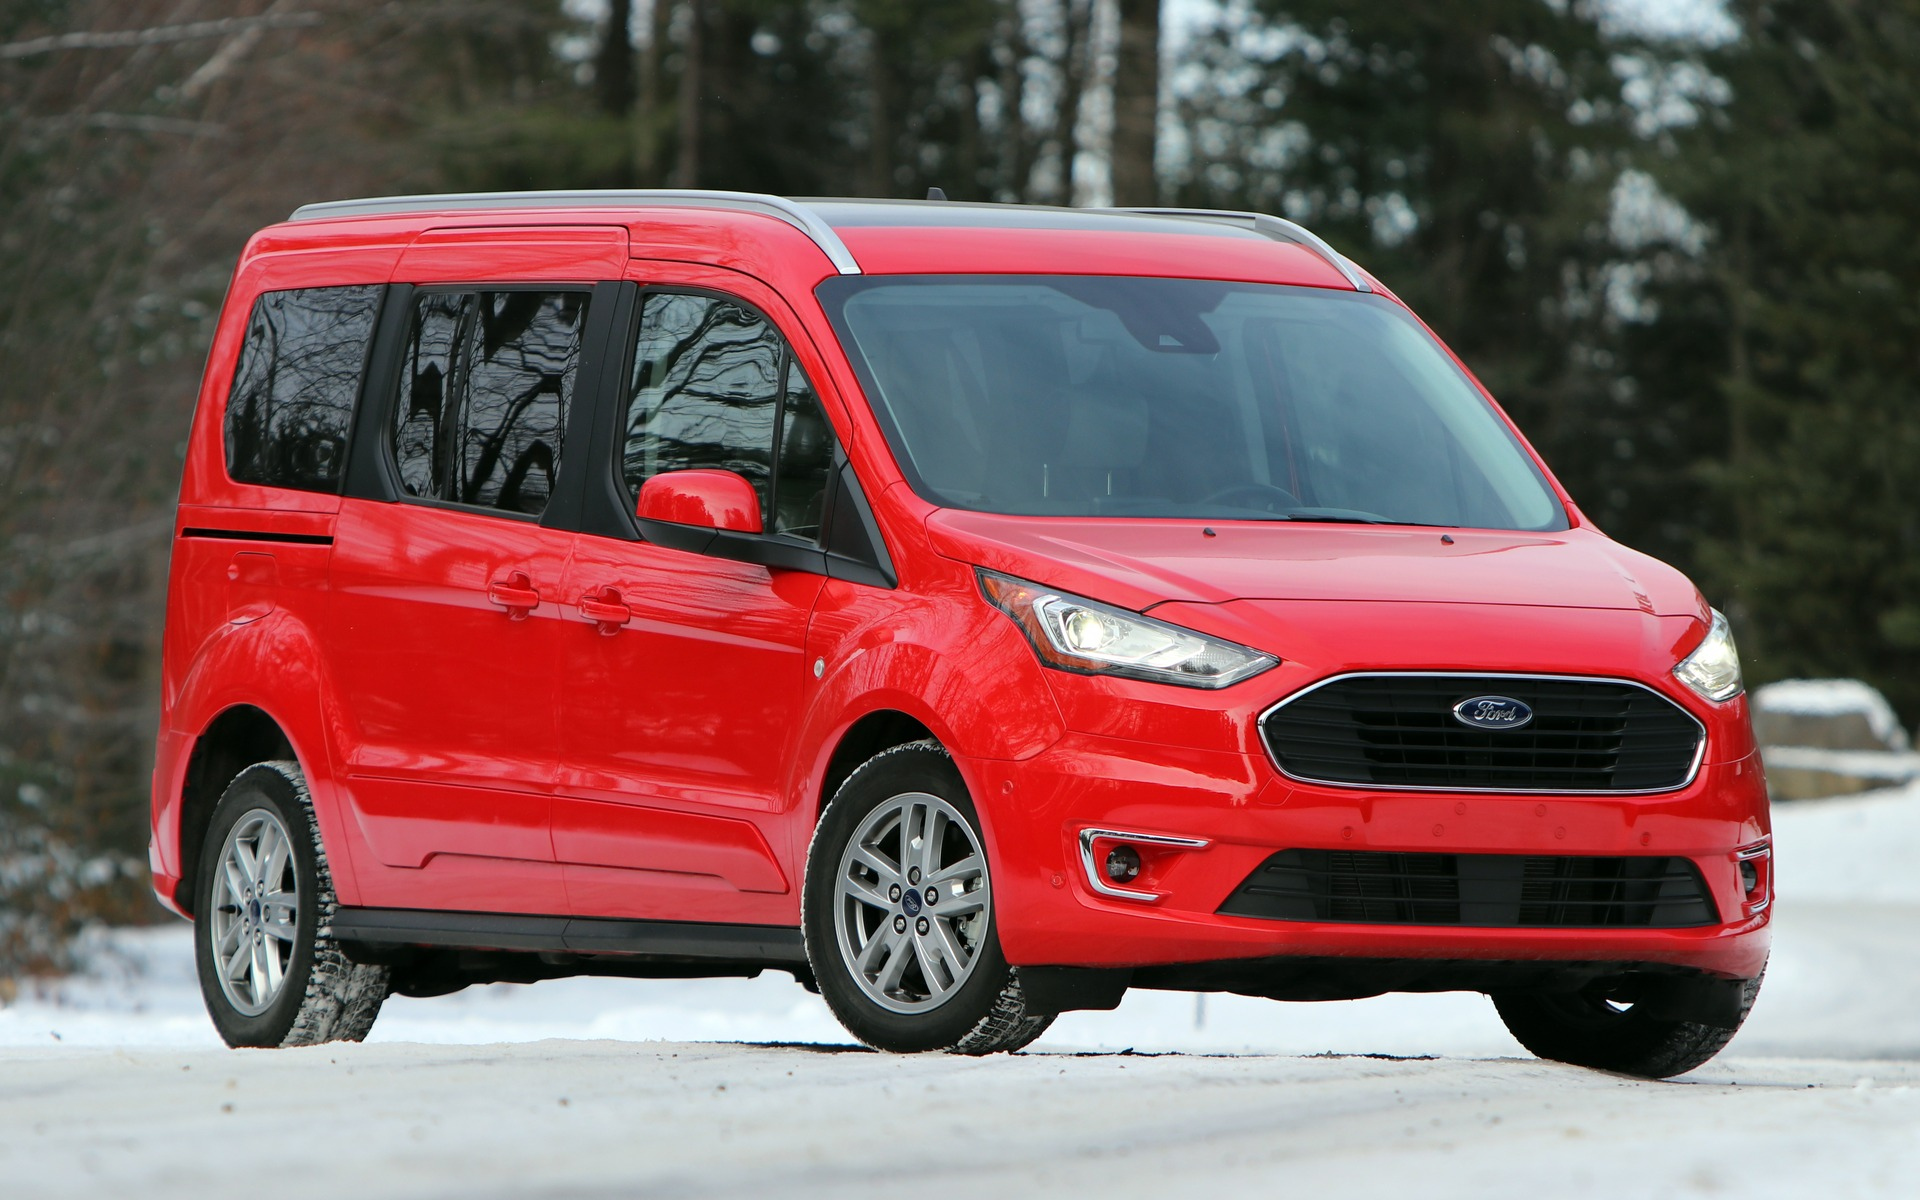 Ford Transit Connect 2020 : Question De Volonté - Guide Auto